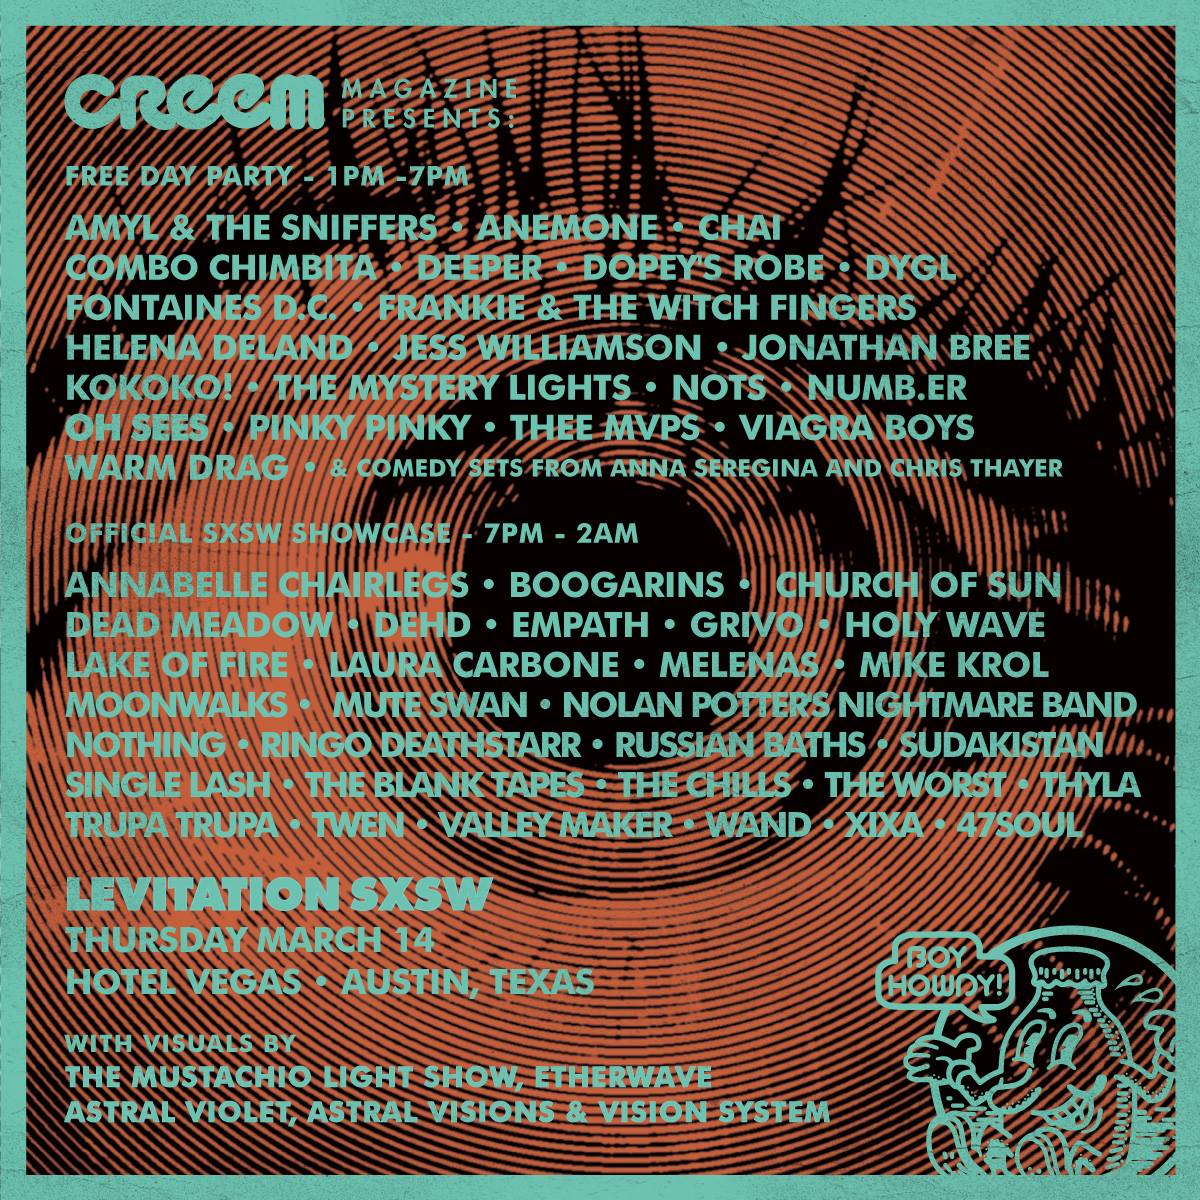 LEVITATION SXSW 2019 presented by Creem Magazine